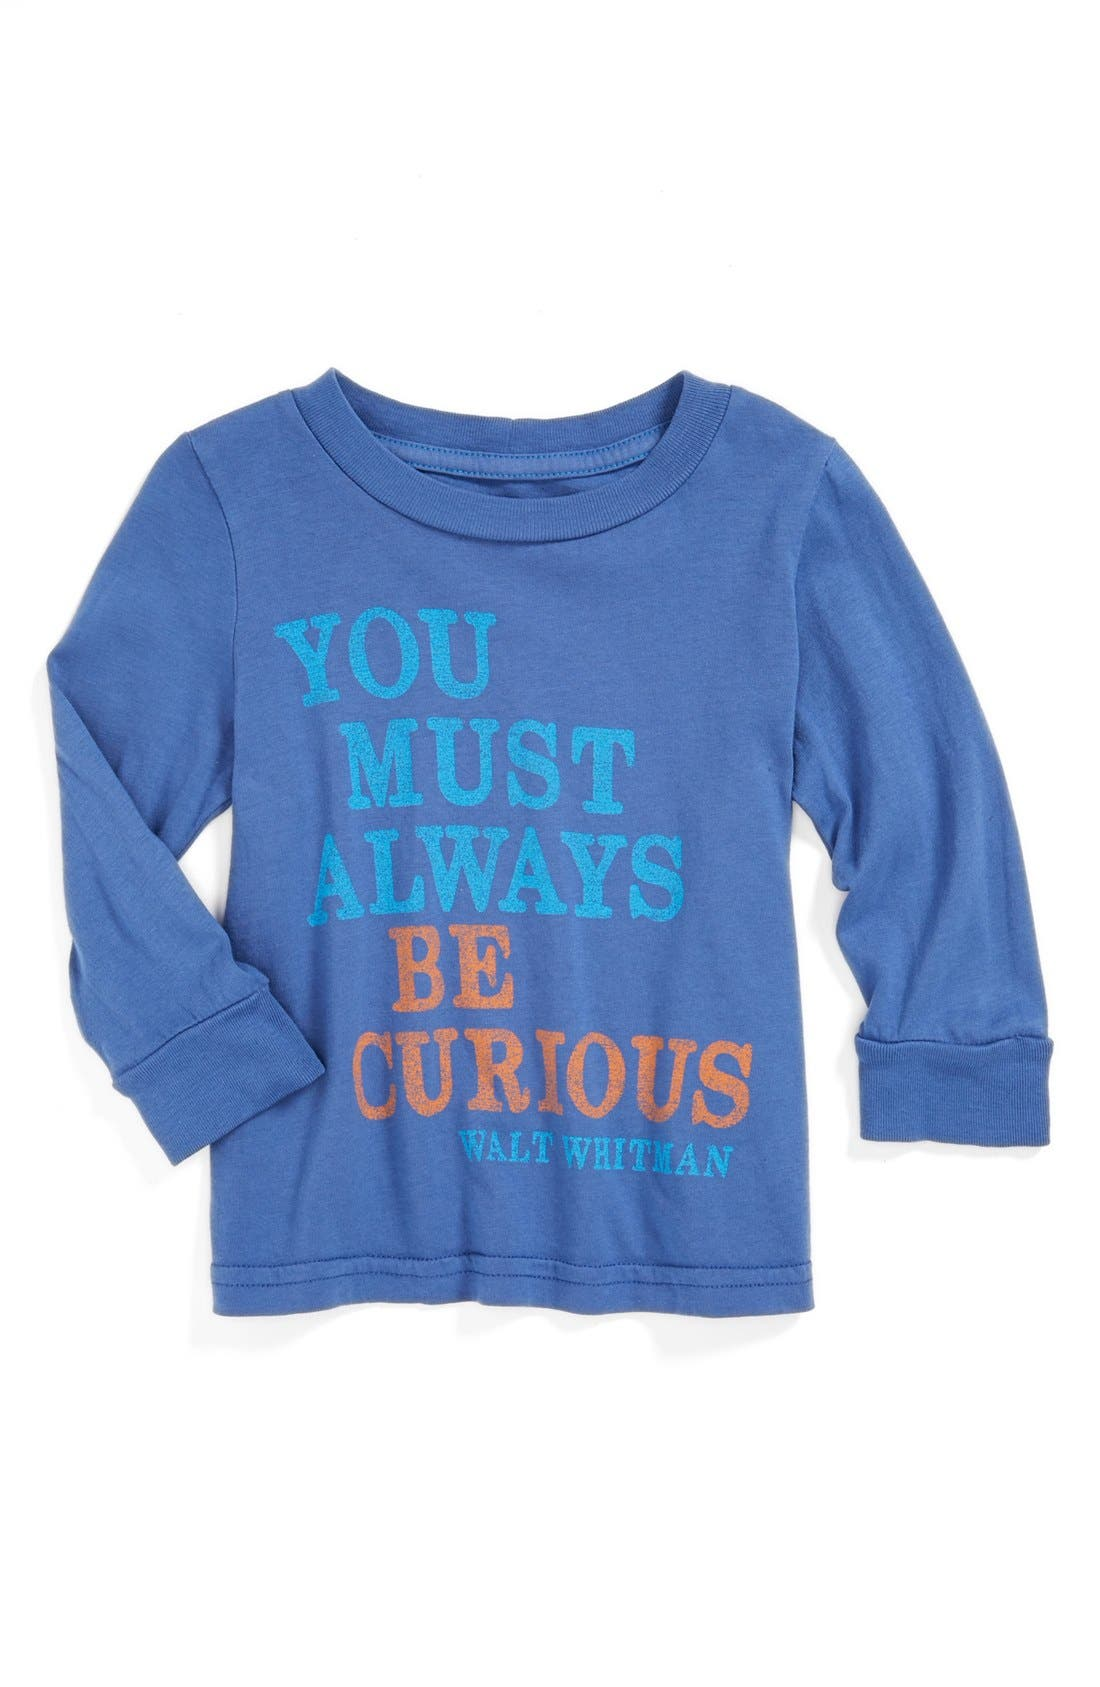 Alternate Image 1 Selected - Peek 'Always Be Curious' T-Shirt (Baby Boys)